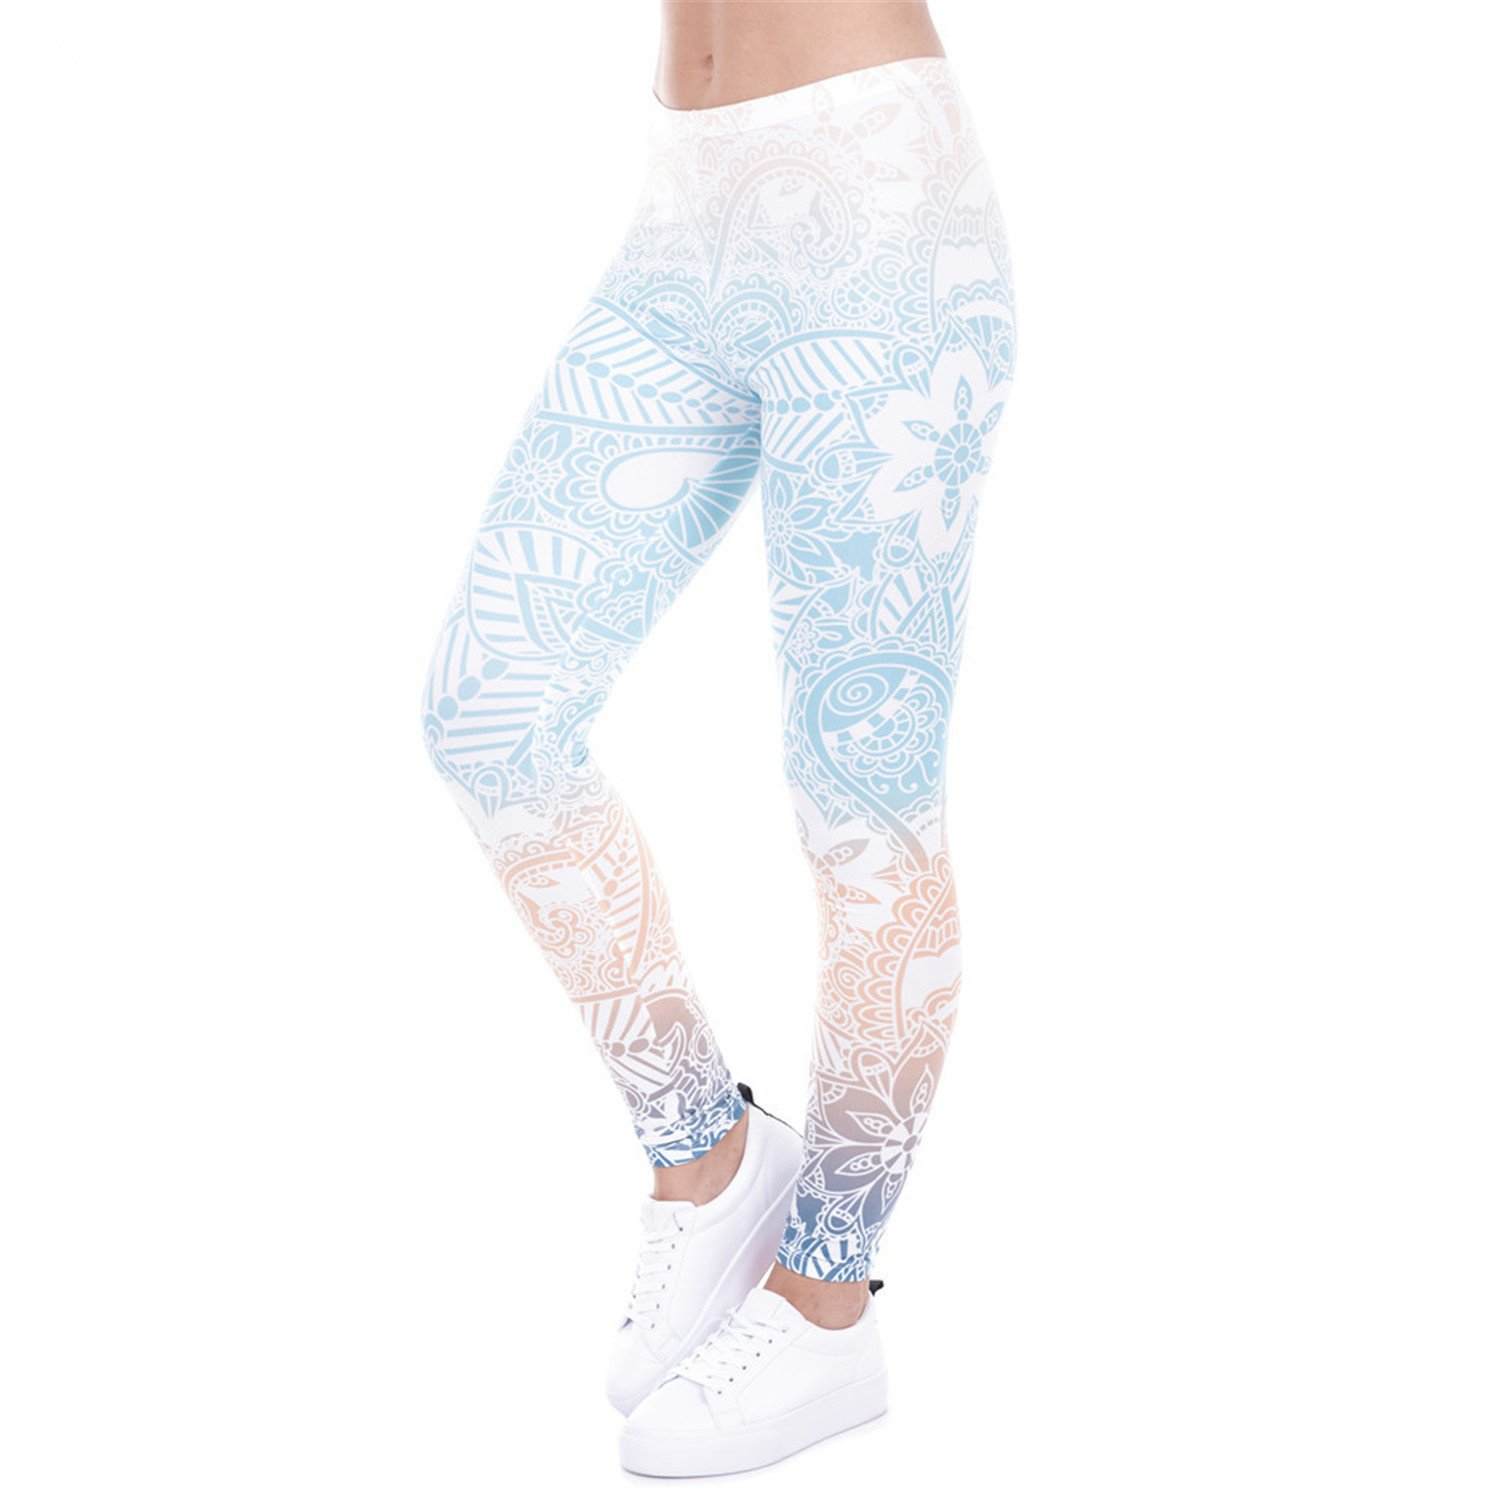 2857e4498d0285 MZjJPN Women Print Fitness High Elasticity Leggings 1 One Size Lovely at  Amazon Women's Clothing store: